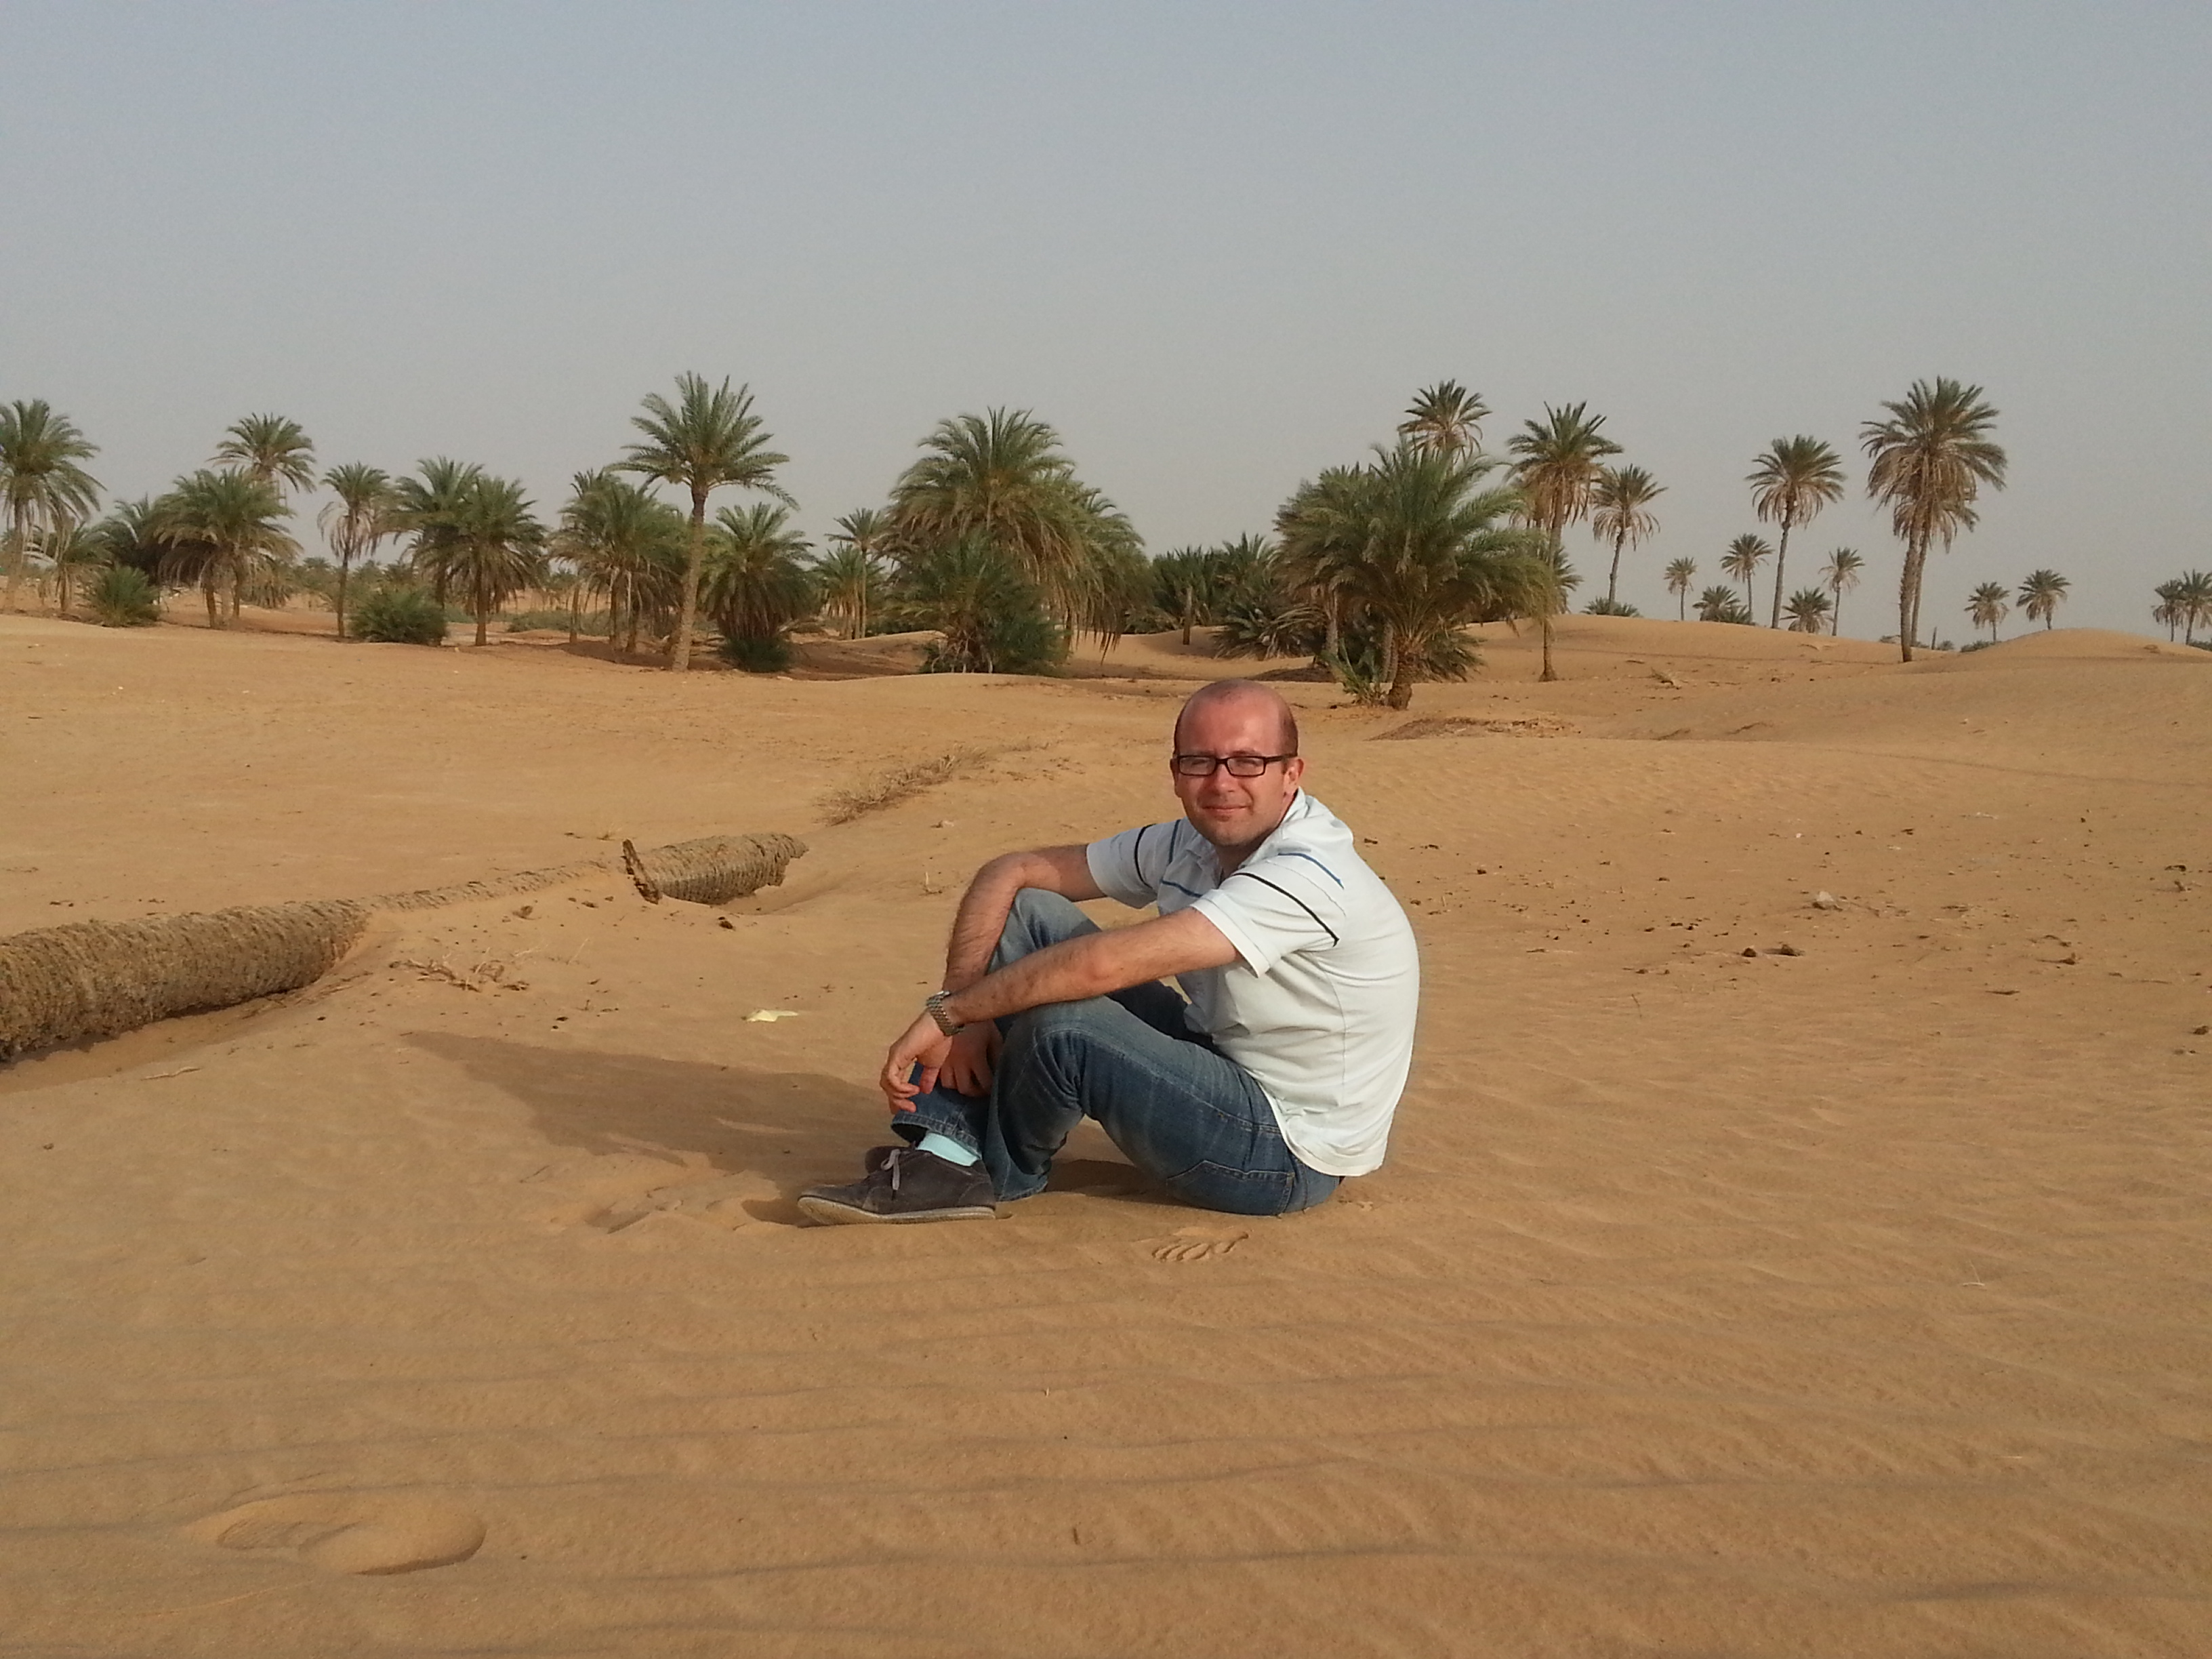 Out in the Sahara desert near Hun, 600km from Tripoli.